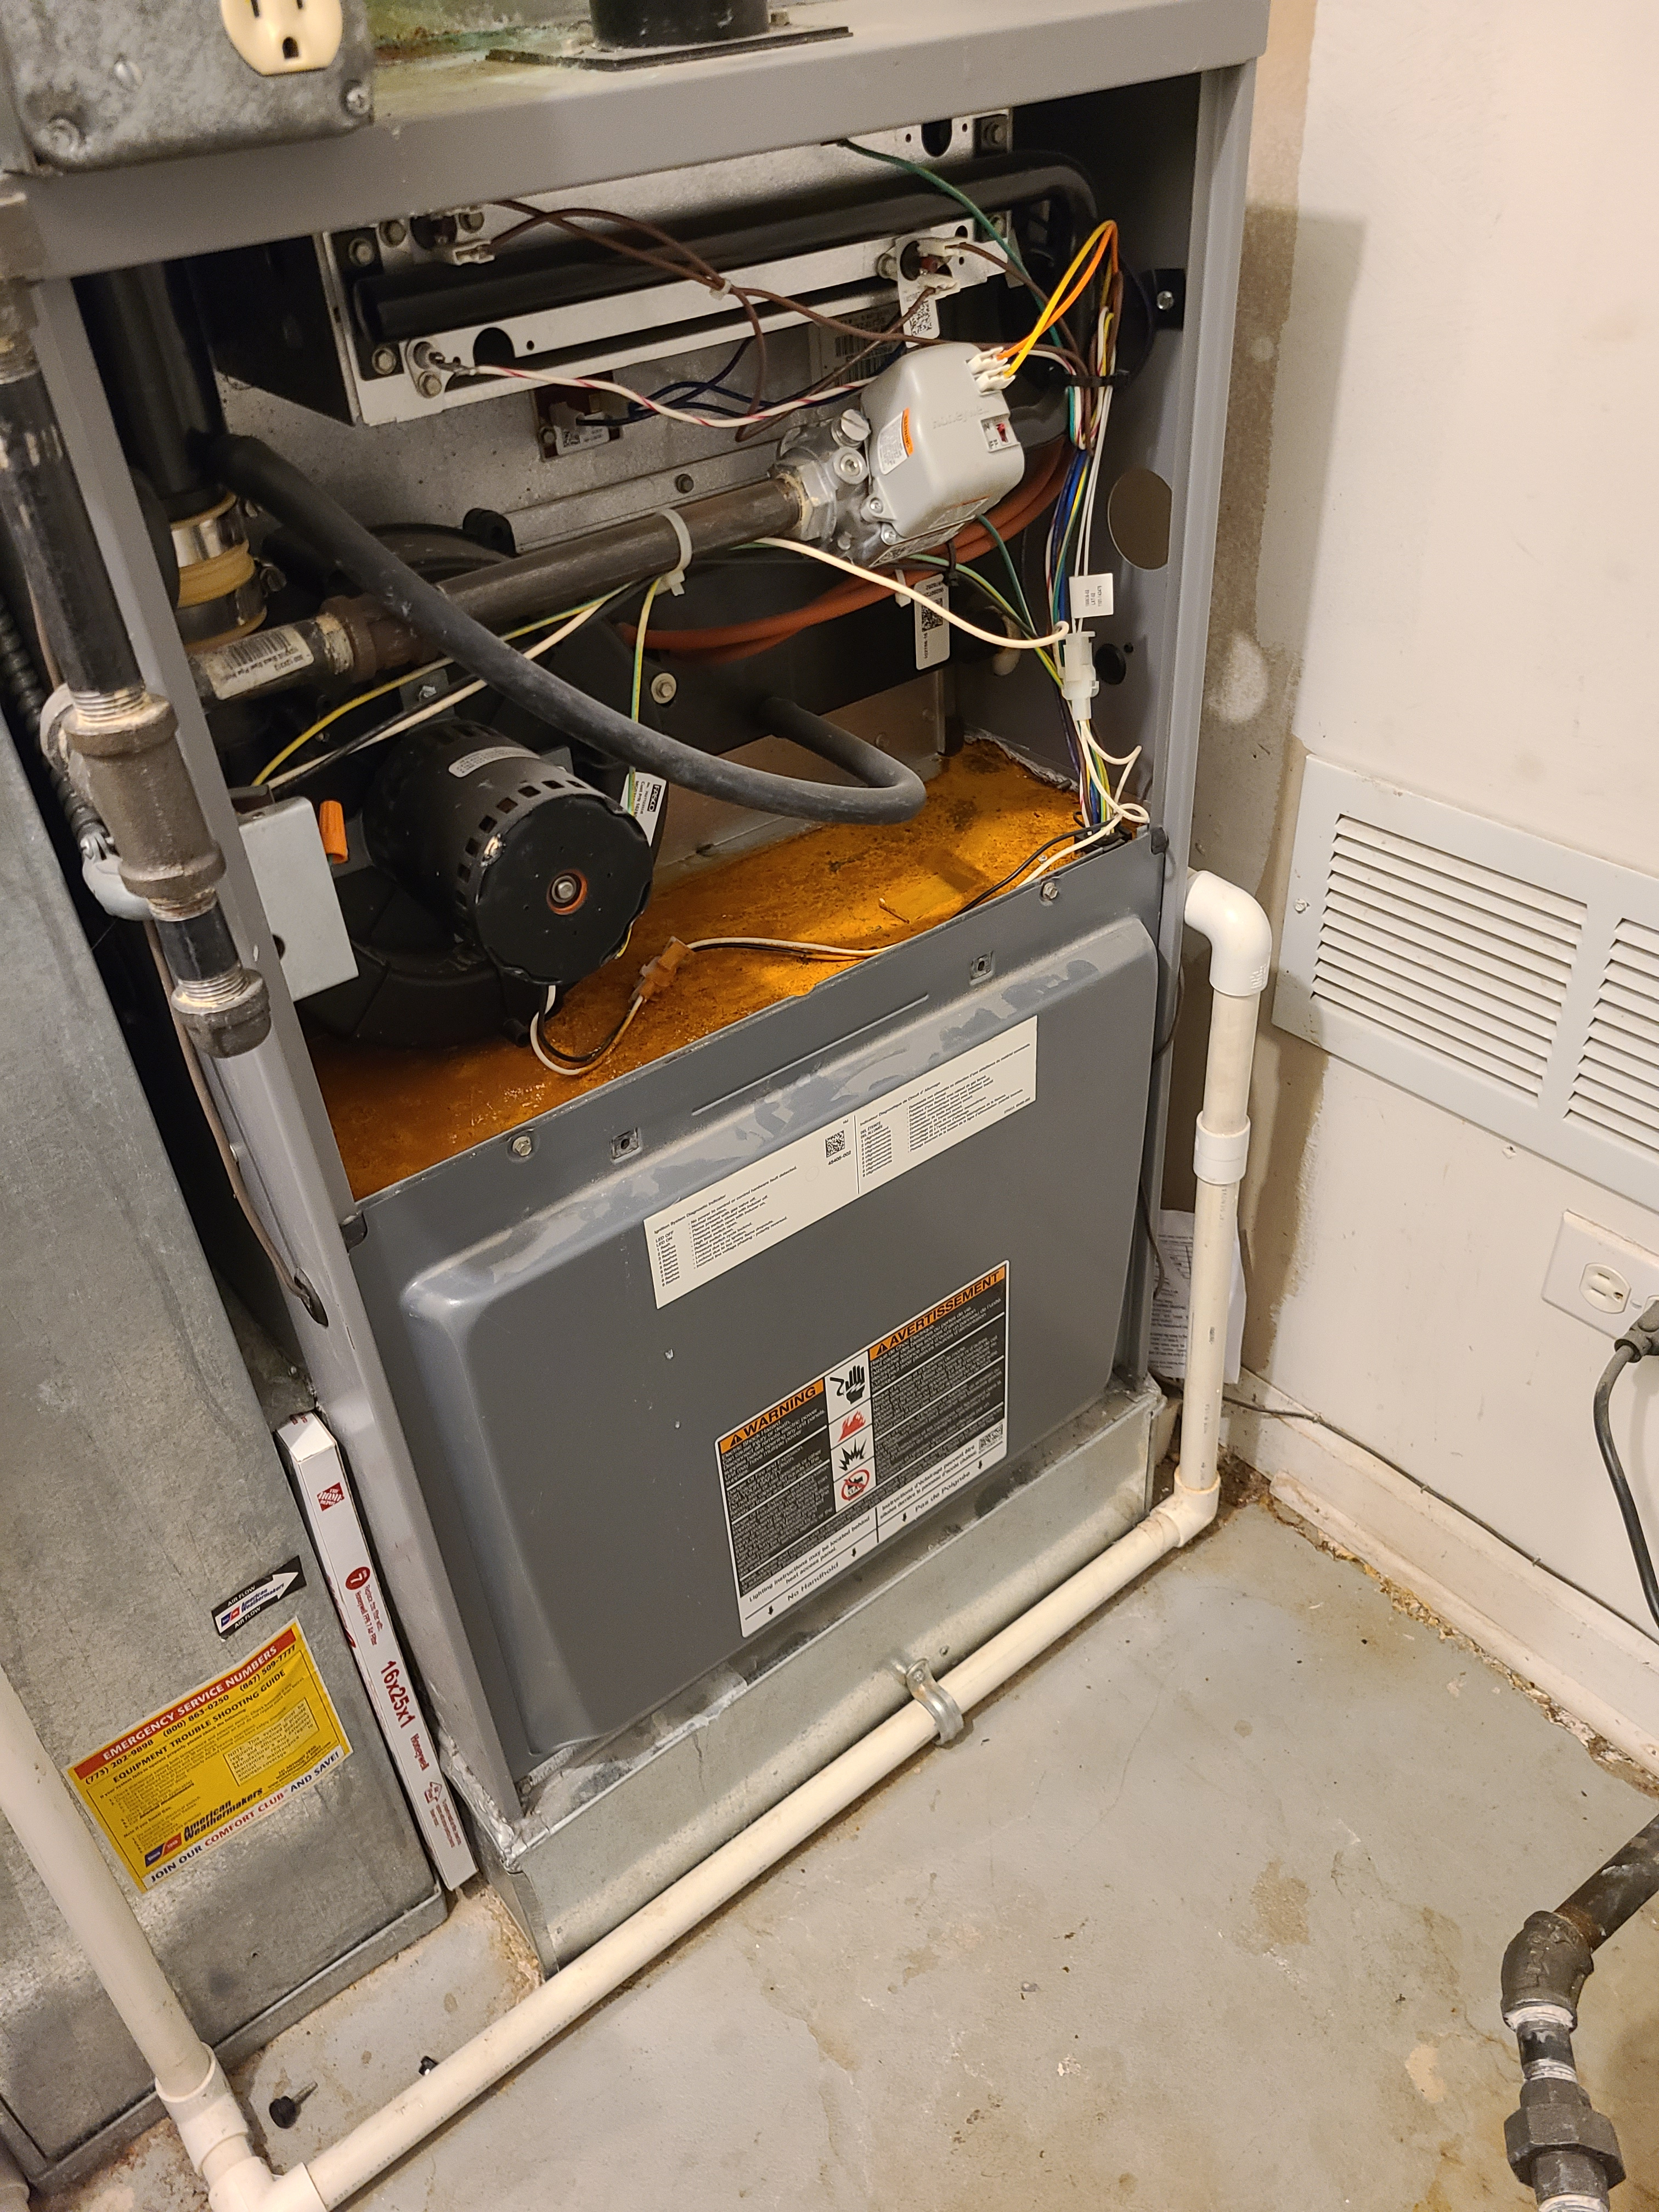 Armstrong air furnace blower motor repaired. System working great at this time.